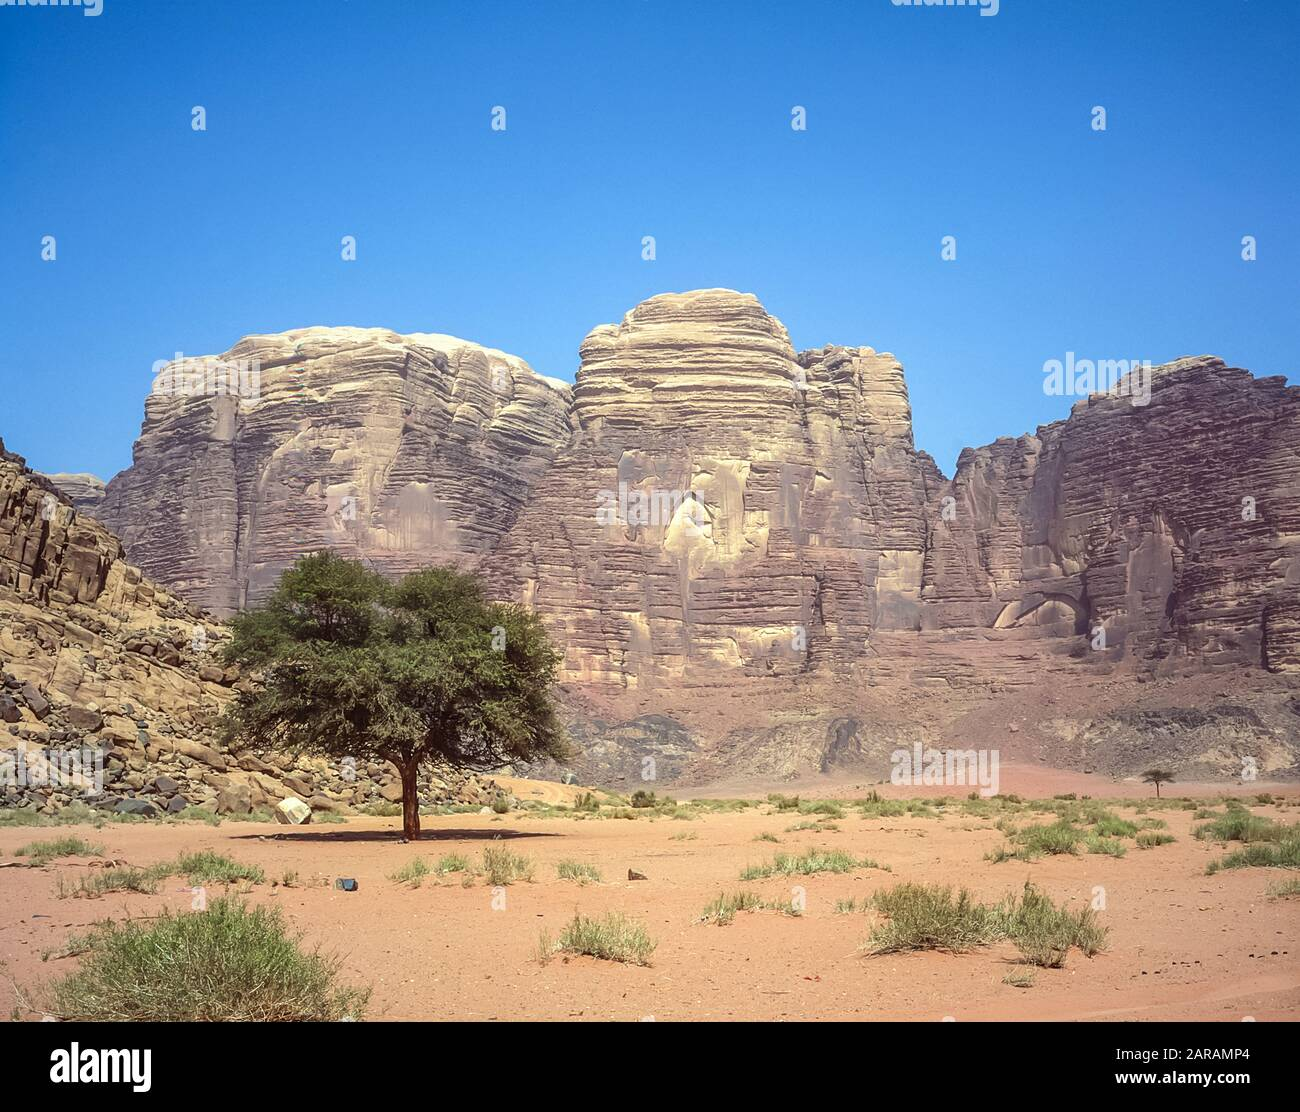 Jordan. Colourful desert mountain landscapes at the UNESCO World Heritage Site of Wadi Rum near the port of Aqaba in southern Jordan  associated with  Lawrence of Arabia. Stock Photo